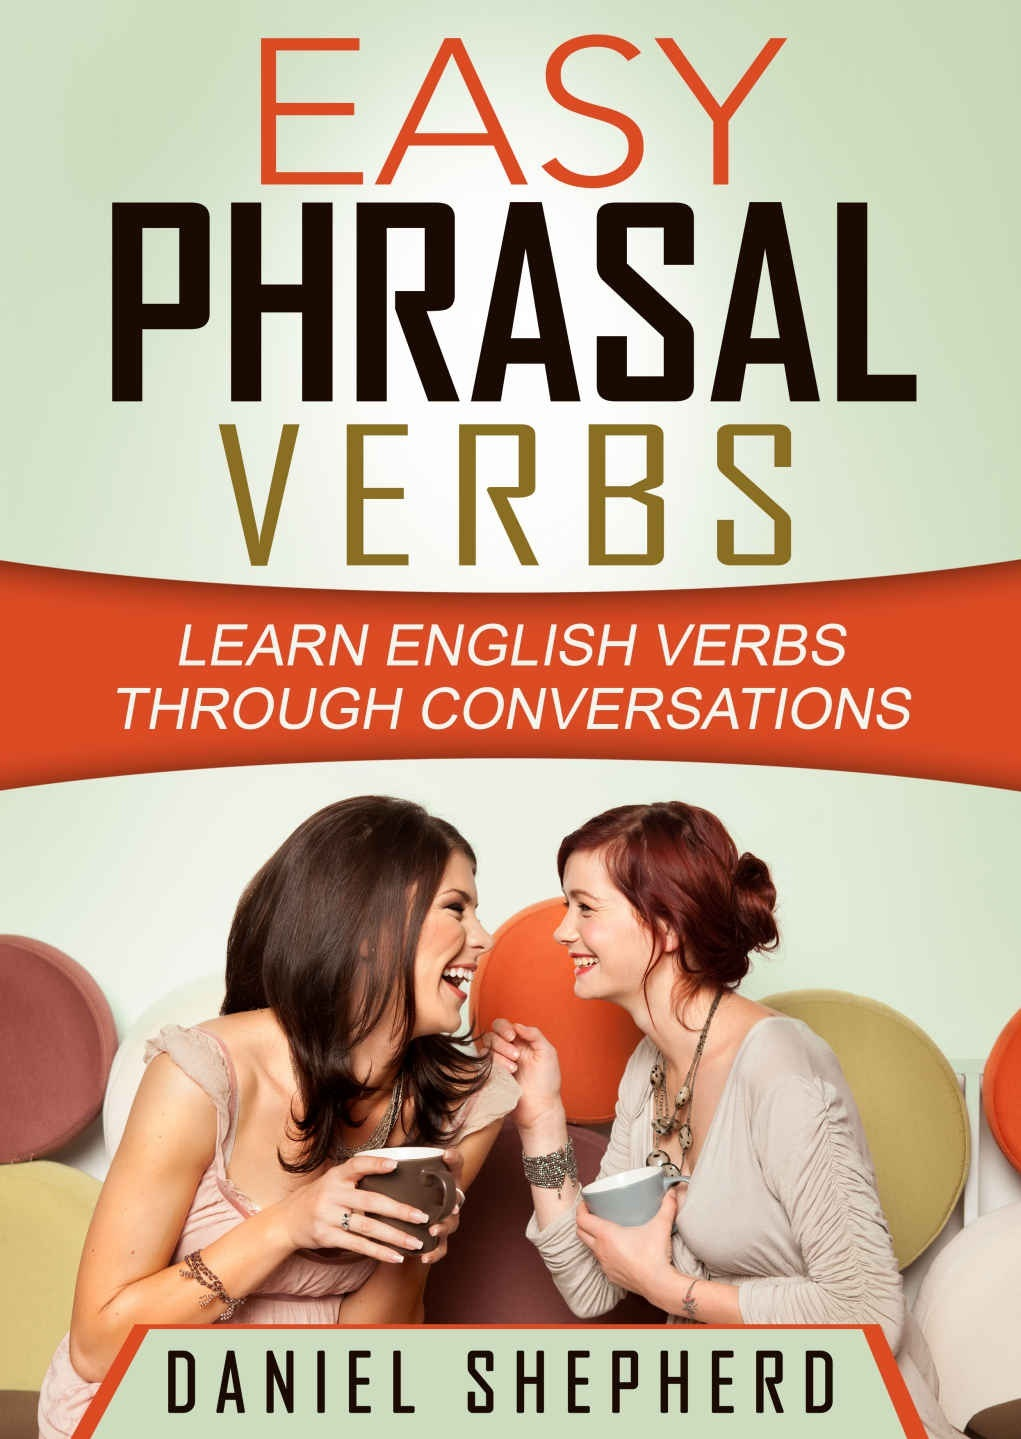 Page 1 of Easy Phrasal Verbs PDF: Learn English verbs through conversations